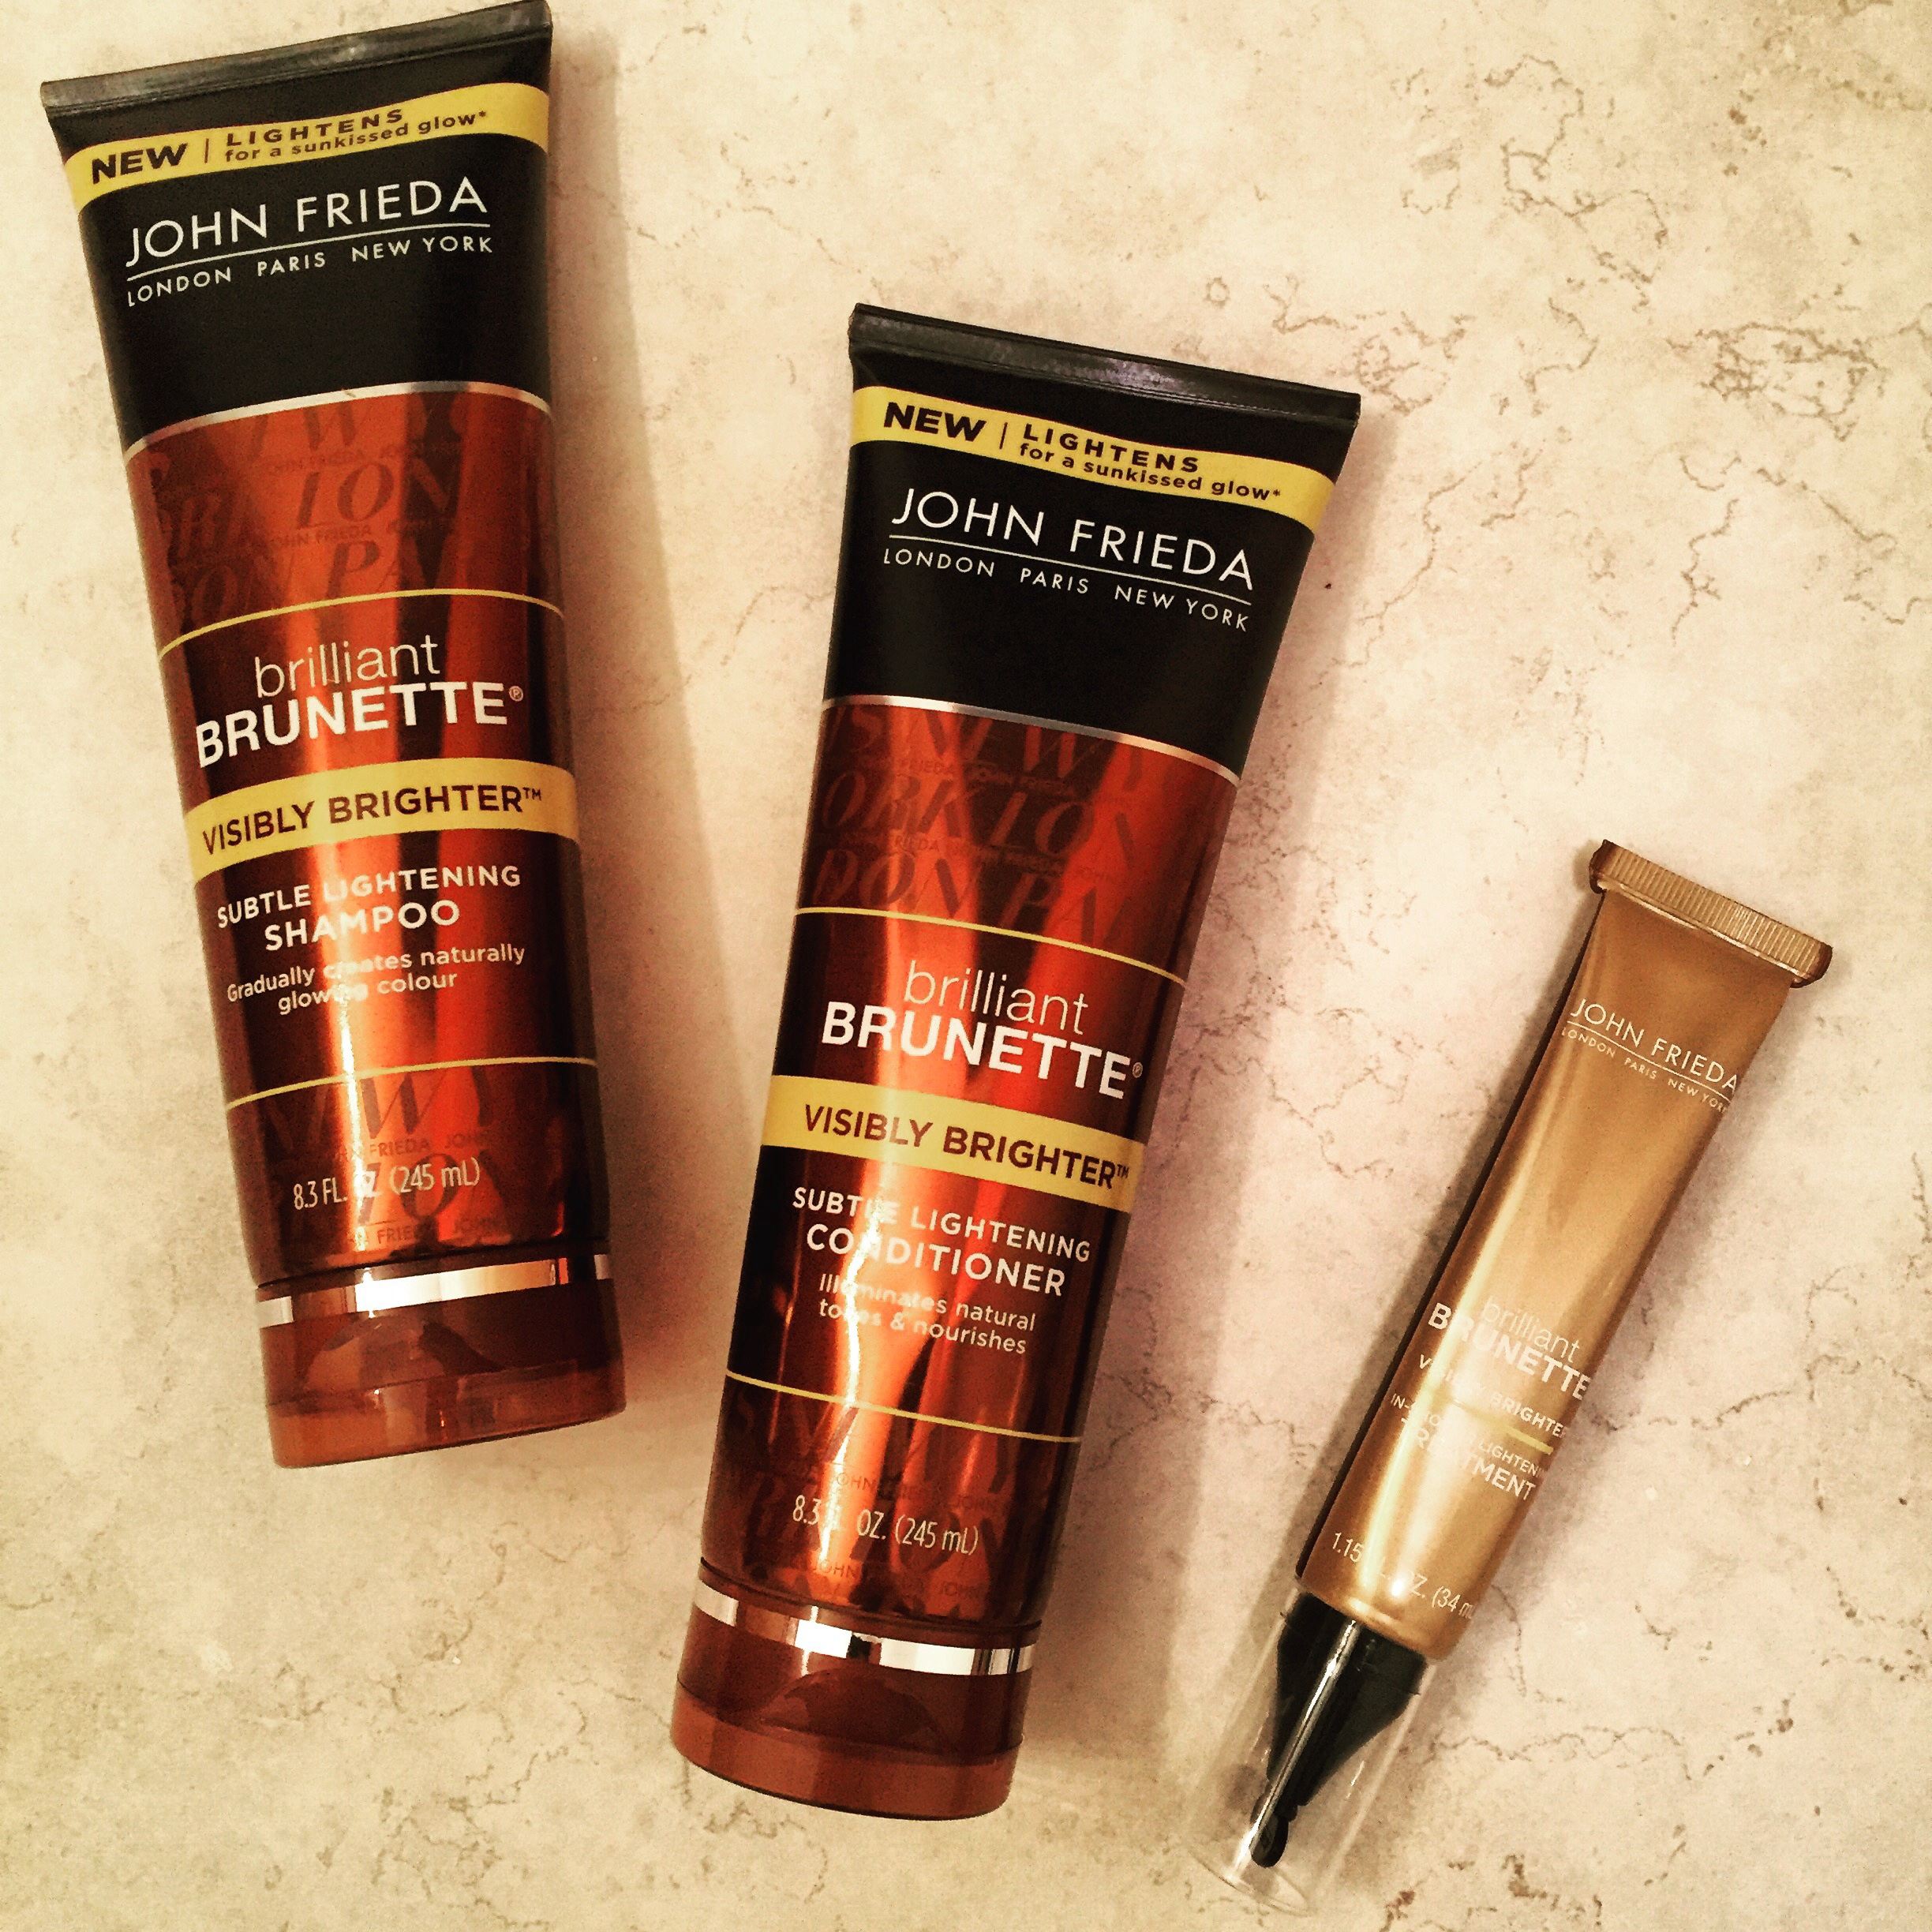 Stealing the Spotlight: John Frieda Brilliant Brunette Visibly Brighter – Part II